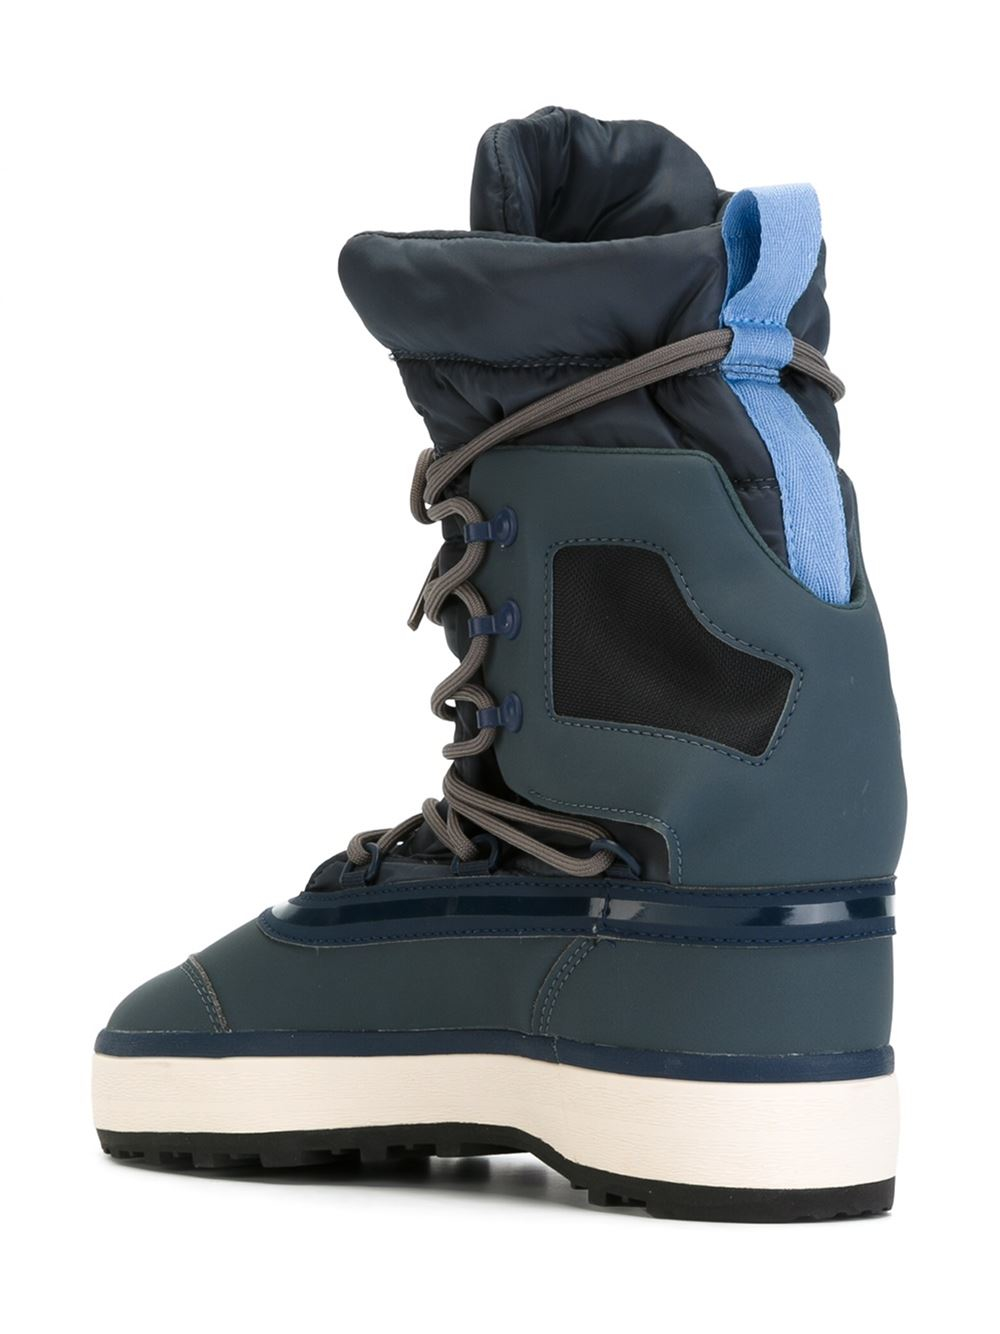 Adidas by stella mccartney Lace-up After Ski Boots in Brown | Lyst